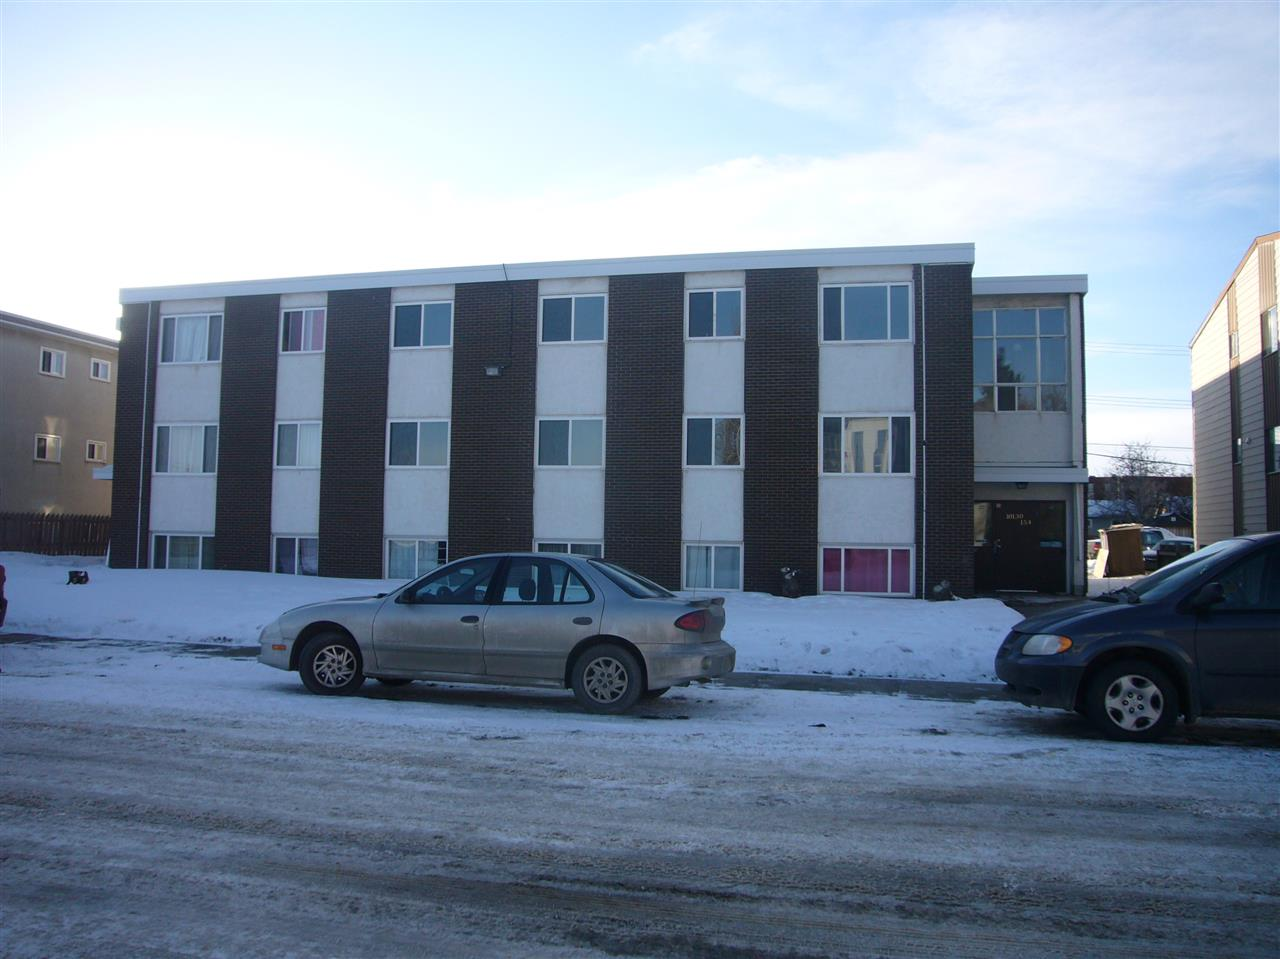 Main Photo: 11 10130 154 Street in Edmonton: Zone 21 Condo for sale : MLS(r) # E4050932